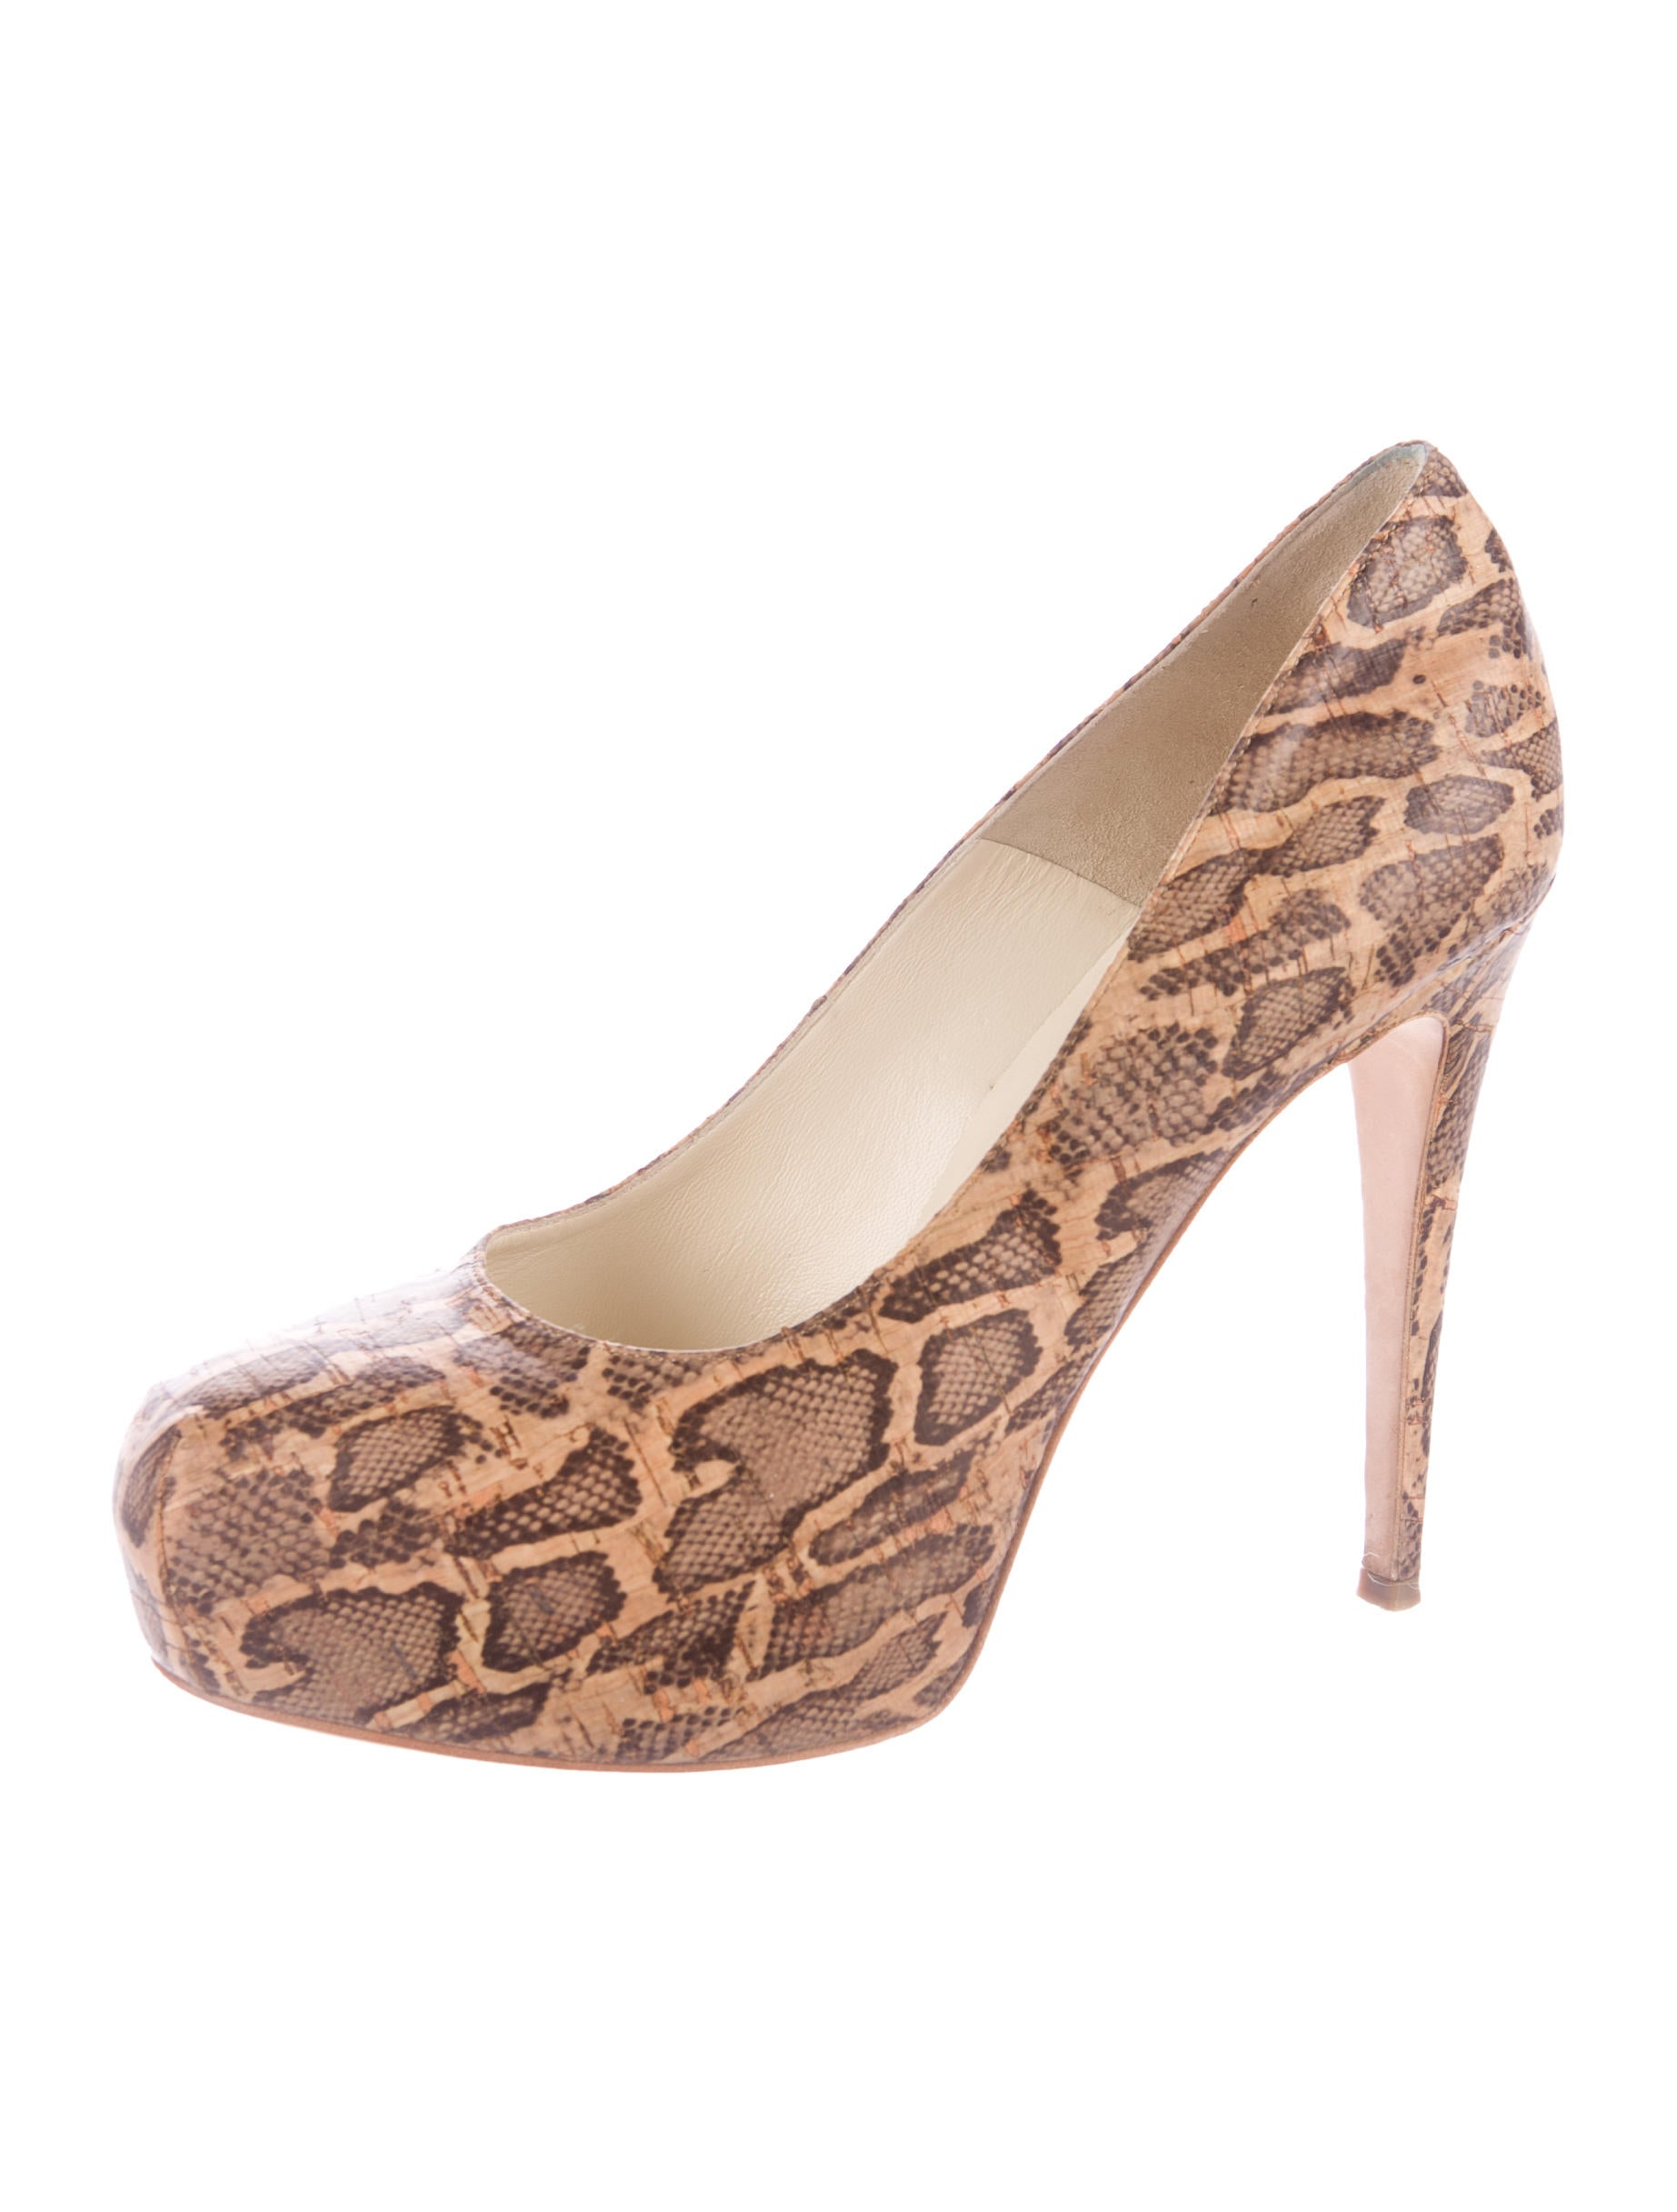 Brian Atwood Shoes Sale